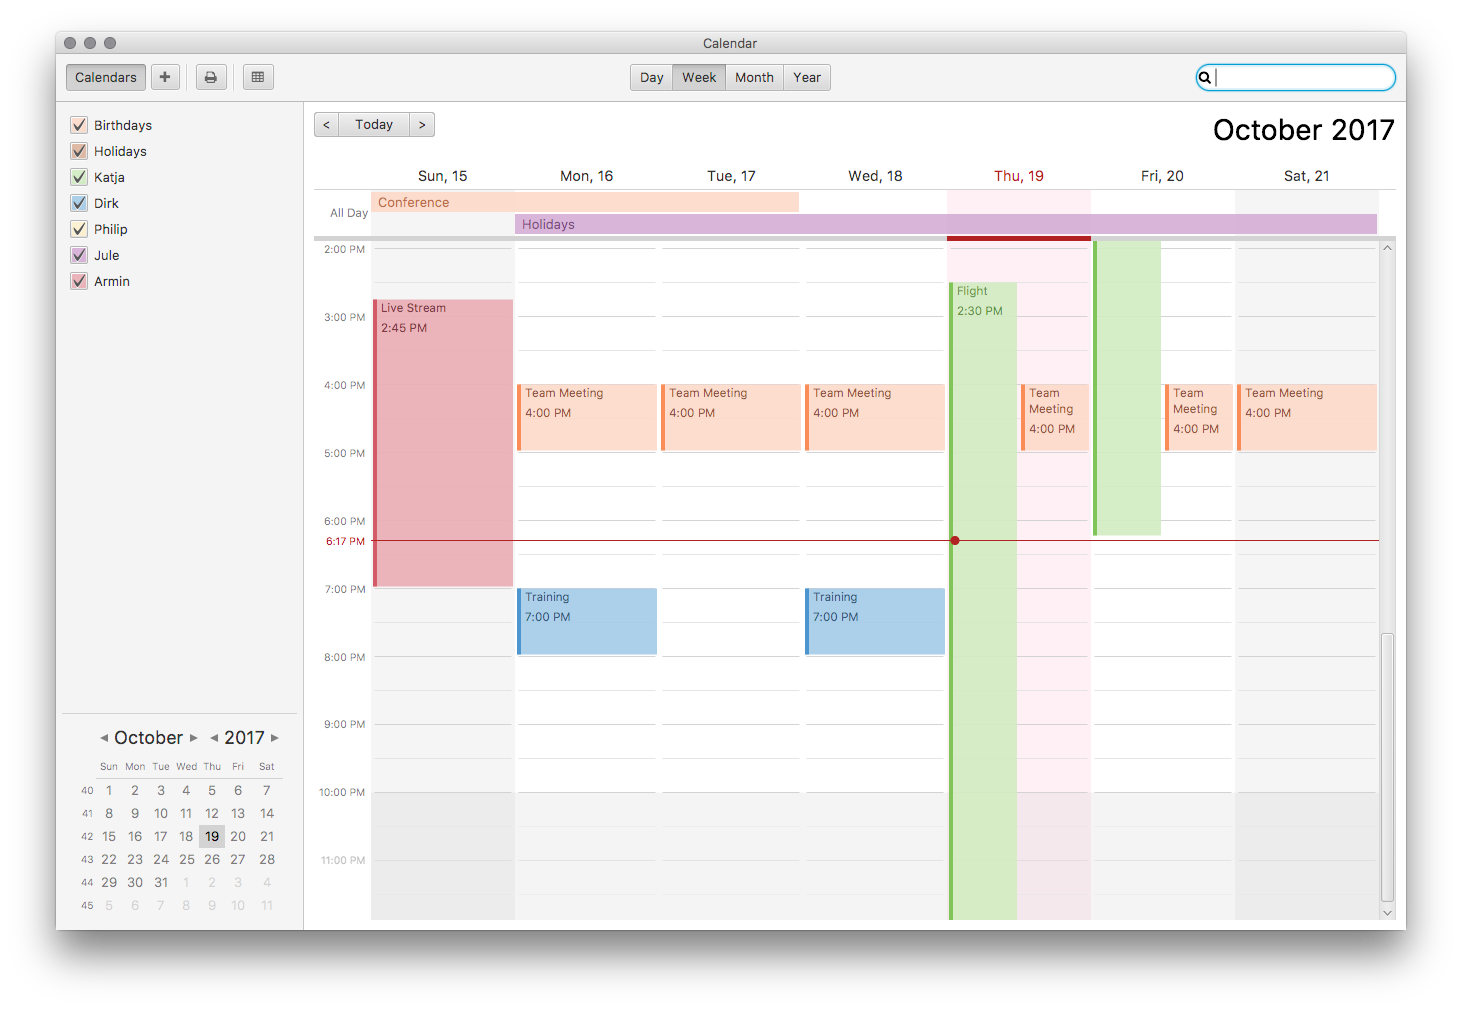 A Java framework for creating sophisticated calendar views (JavaFX 8, 9, 10, and 11)